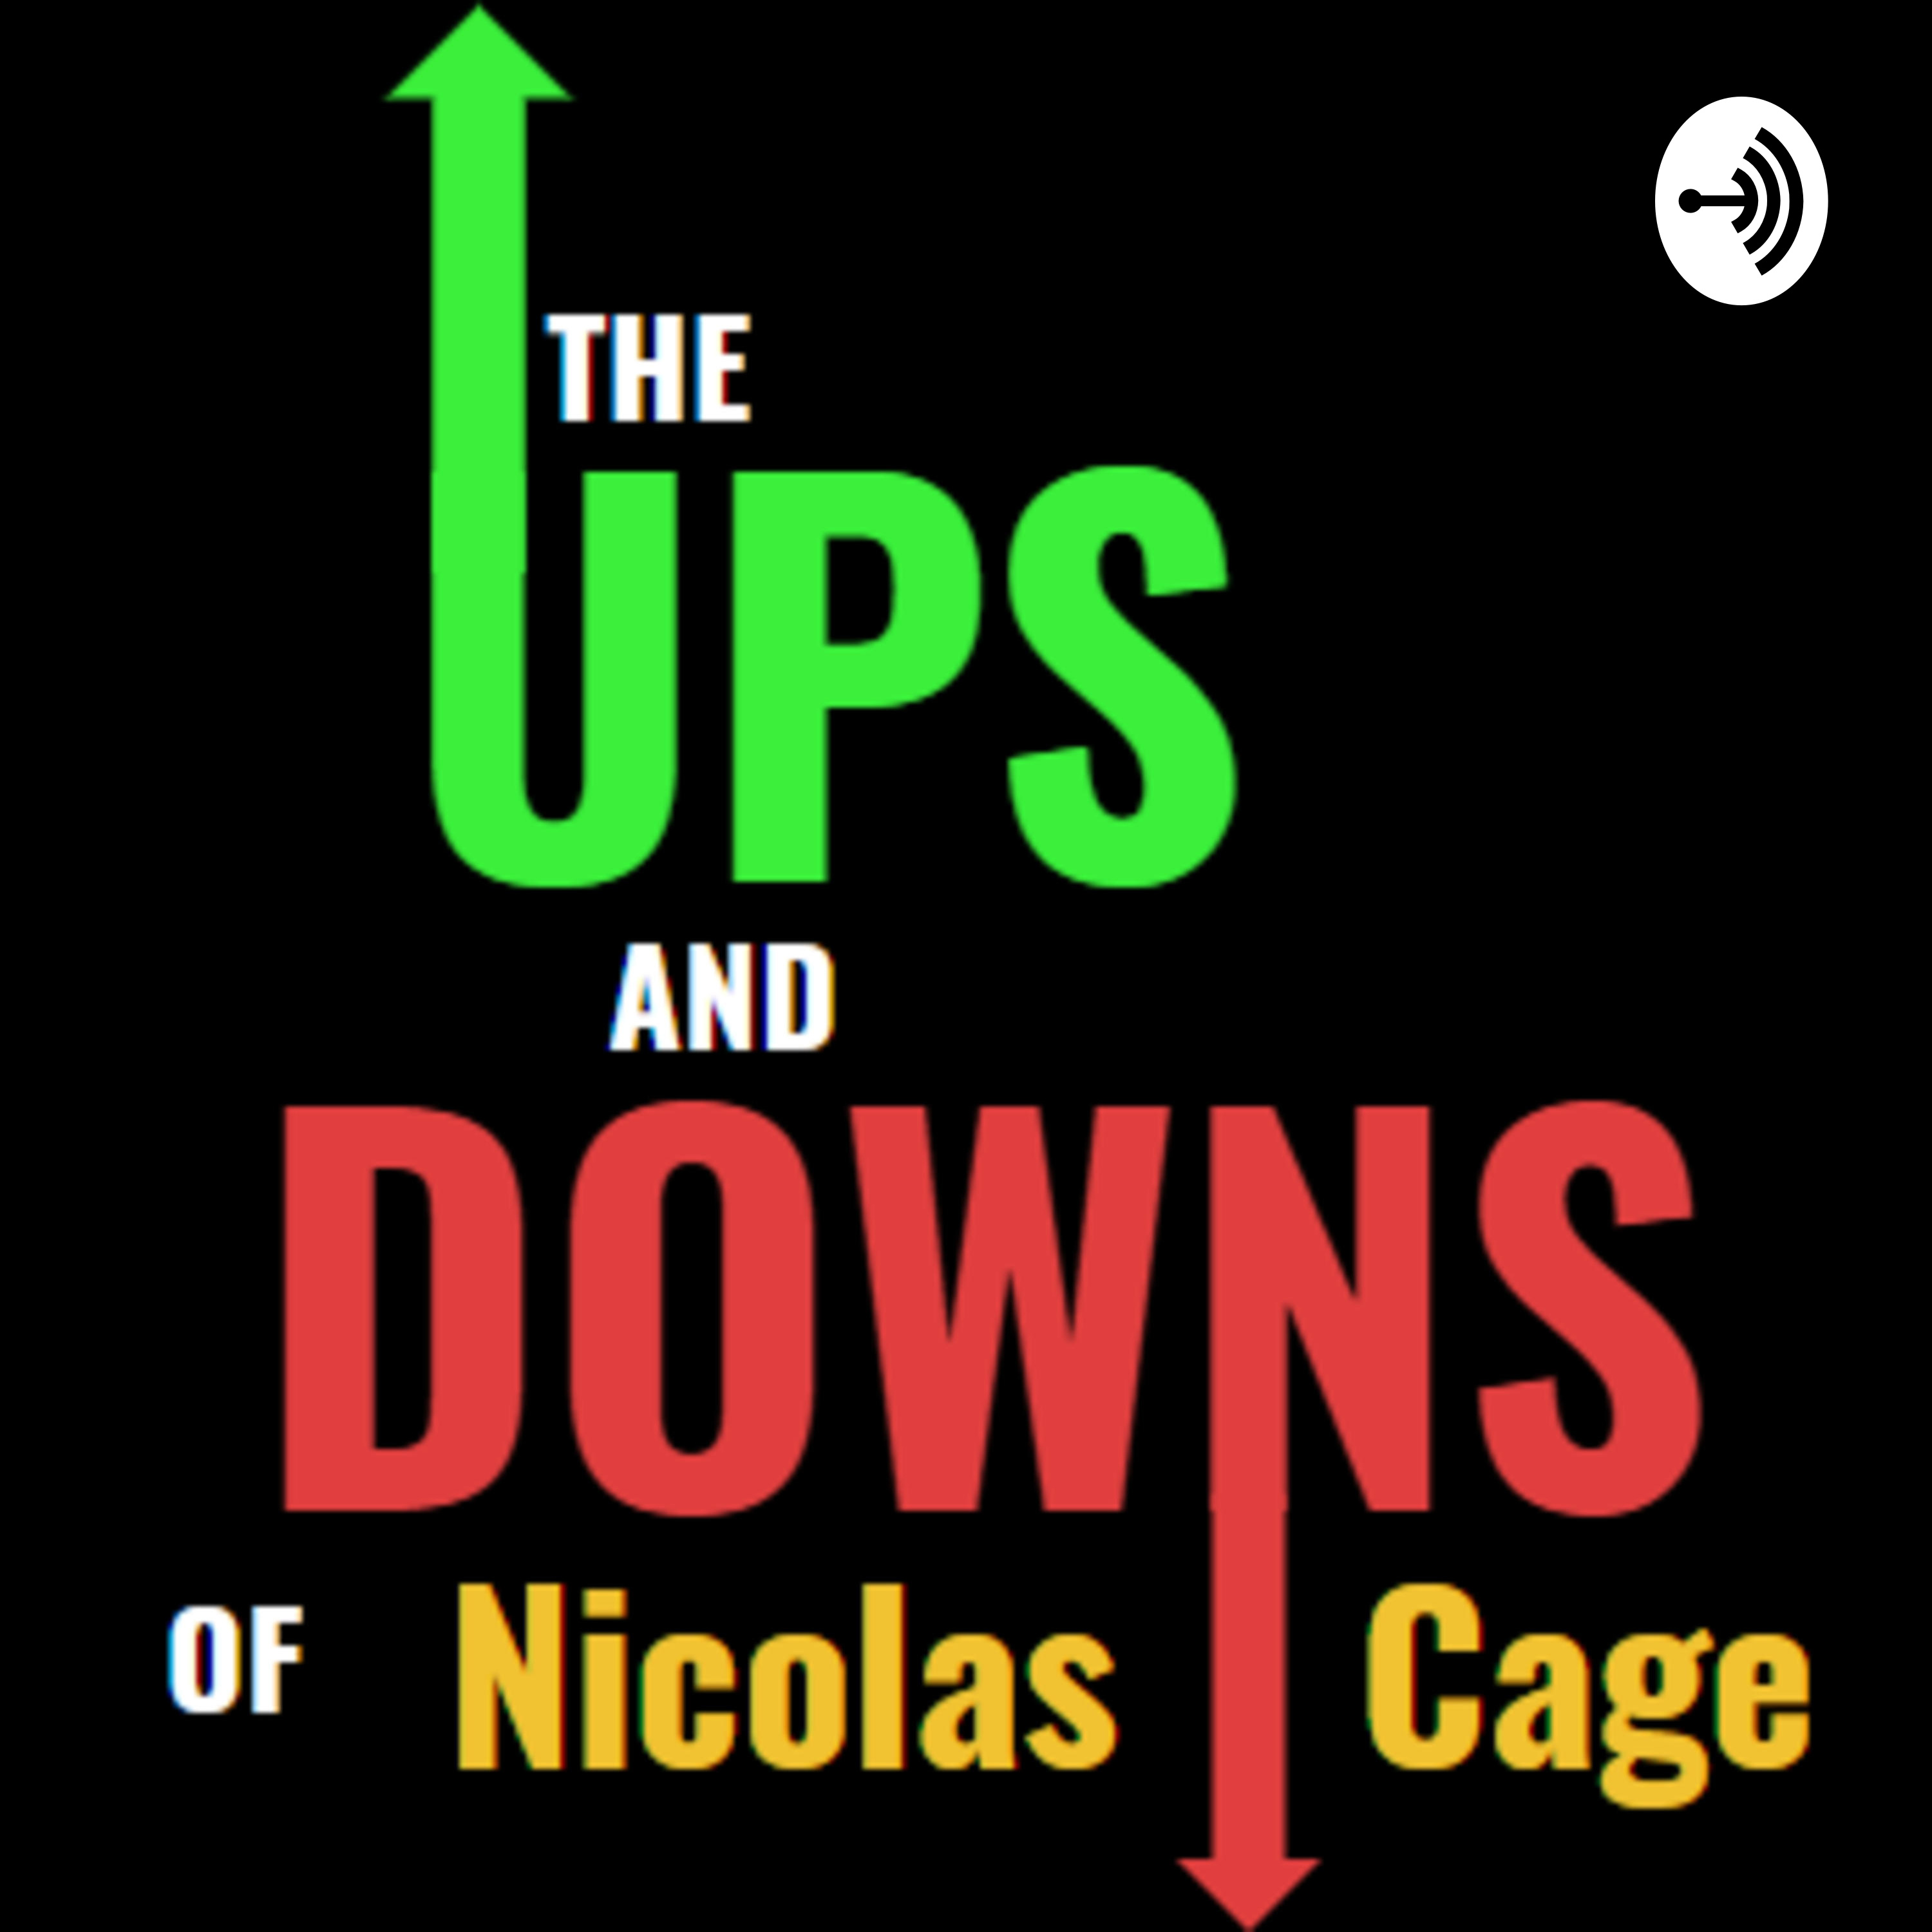 The Ups and Downs of Nicolas Cage